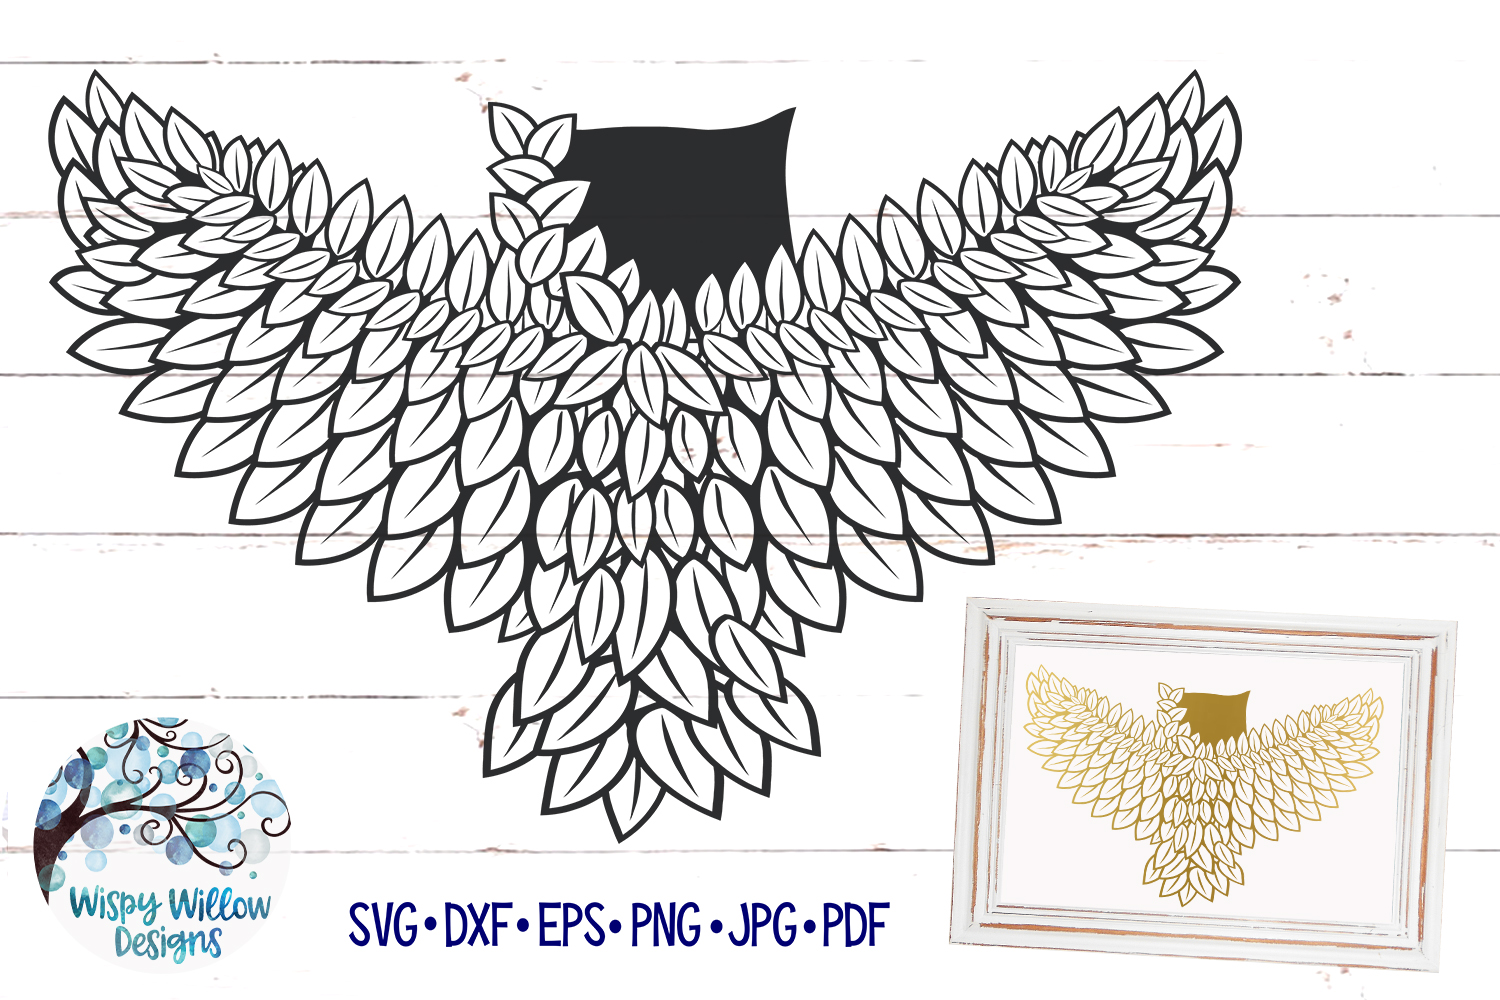 Intricate Owl SVG Cut File example image 4